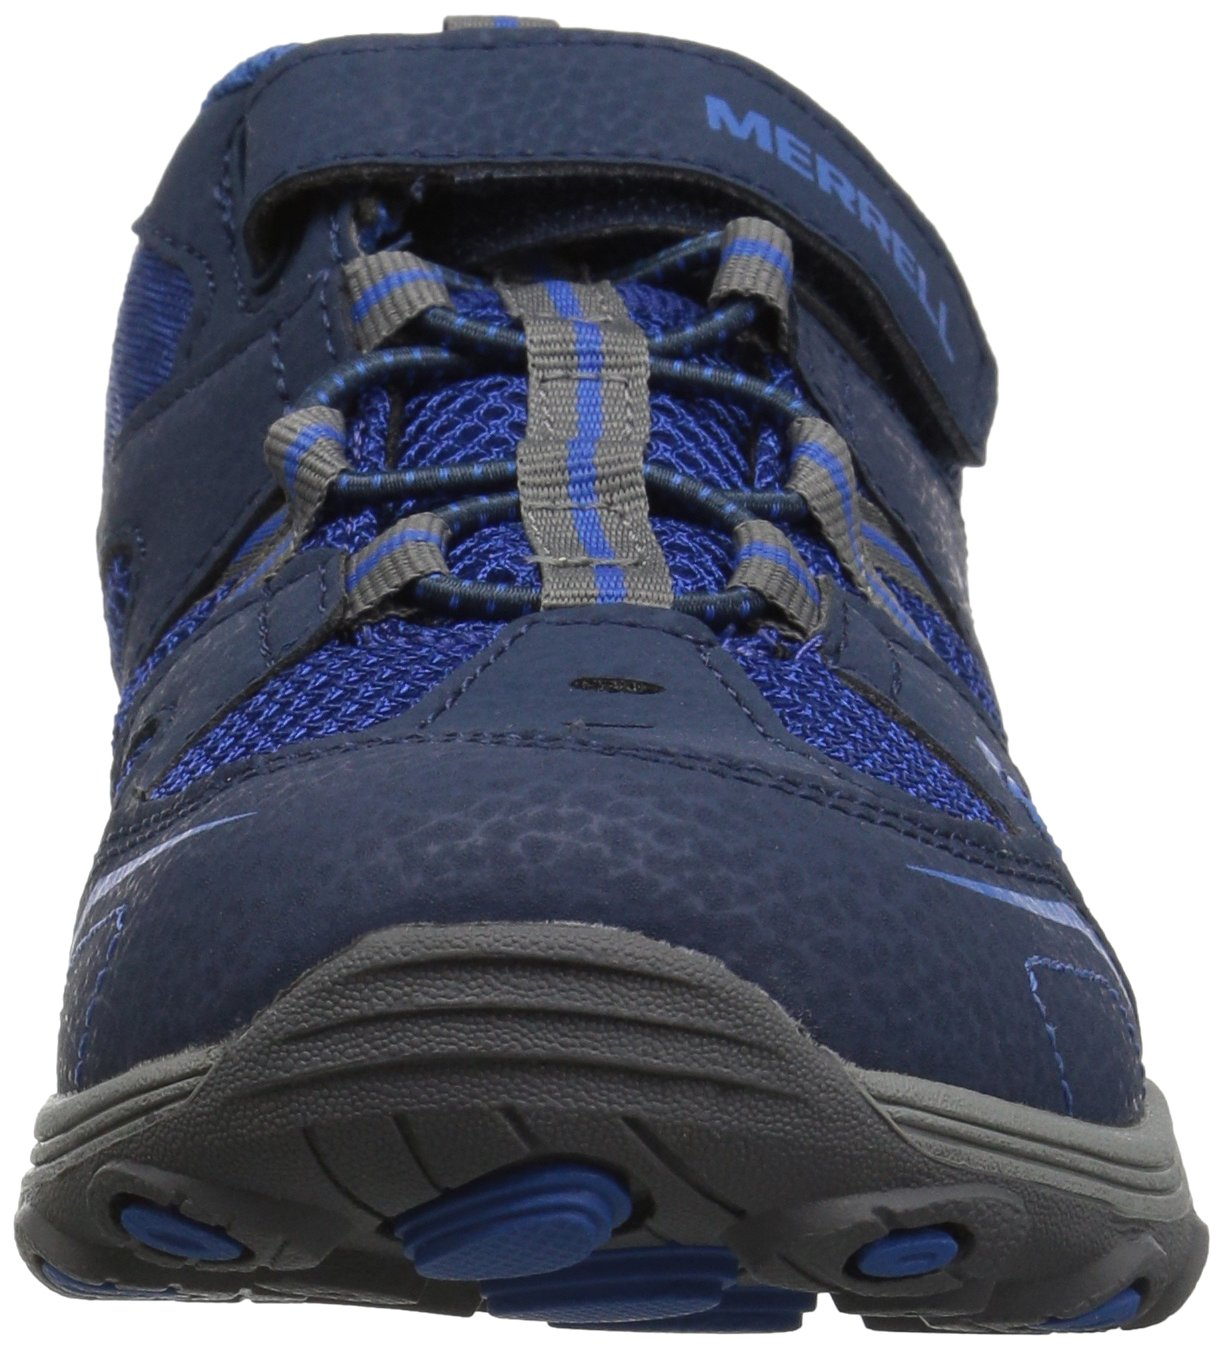 Merrell Trail Chaser Hiking Shoe, Navy, 4 M US Big Kid by Merrell (Image #4)